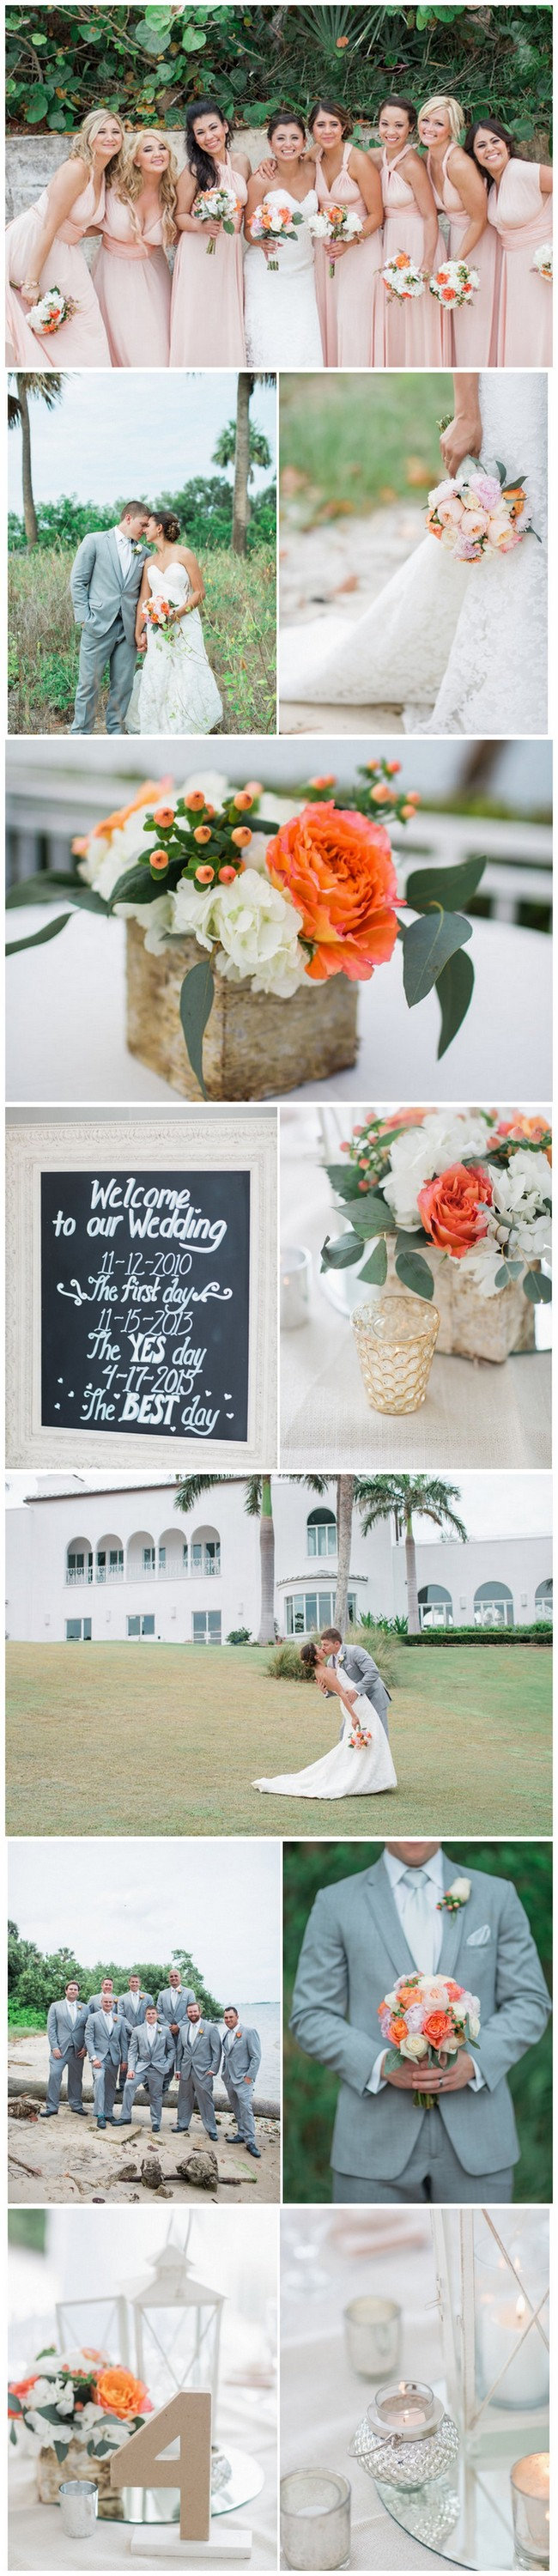 Coral Spring Florida Wedding  - Jessica Bordner Photography. See more gorgeous details here: https://www.confettidaydreams.com/vintage-spring-florida-wedding/